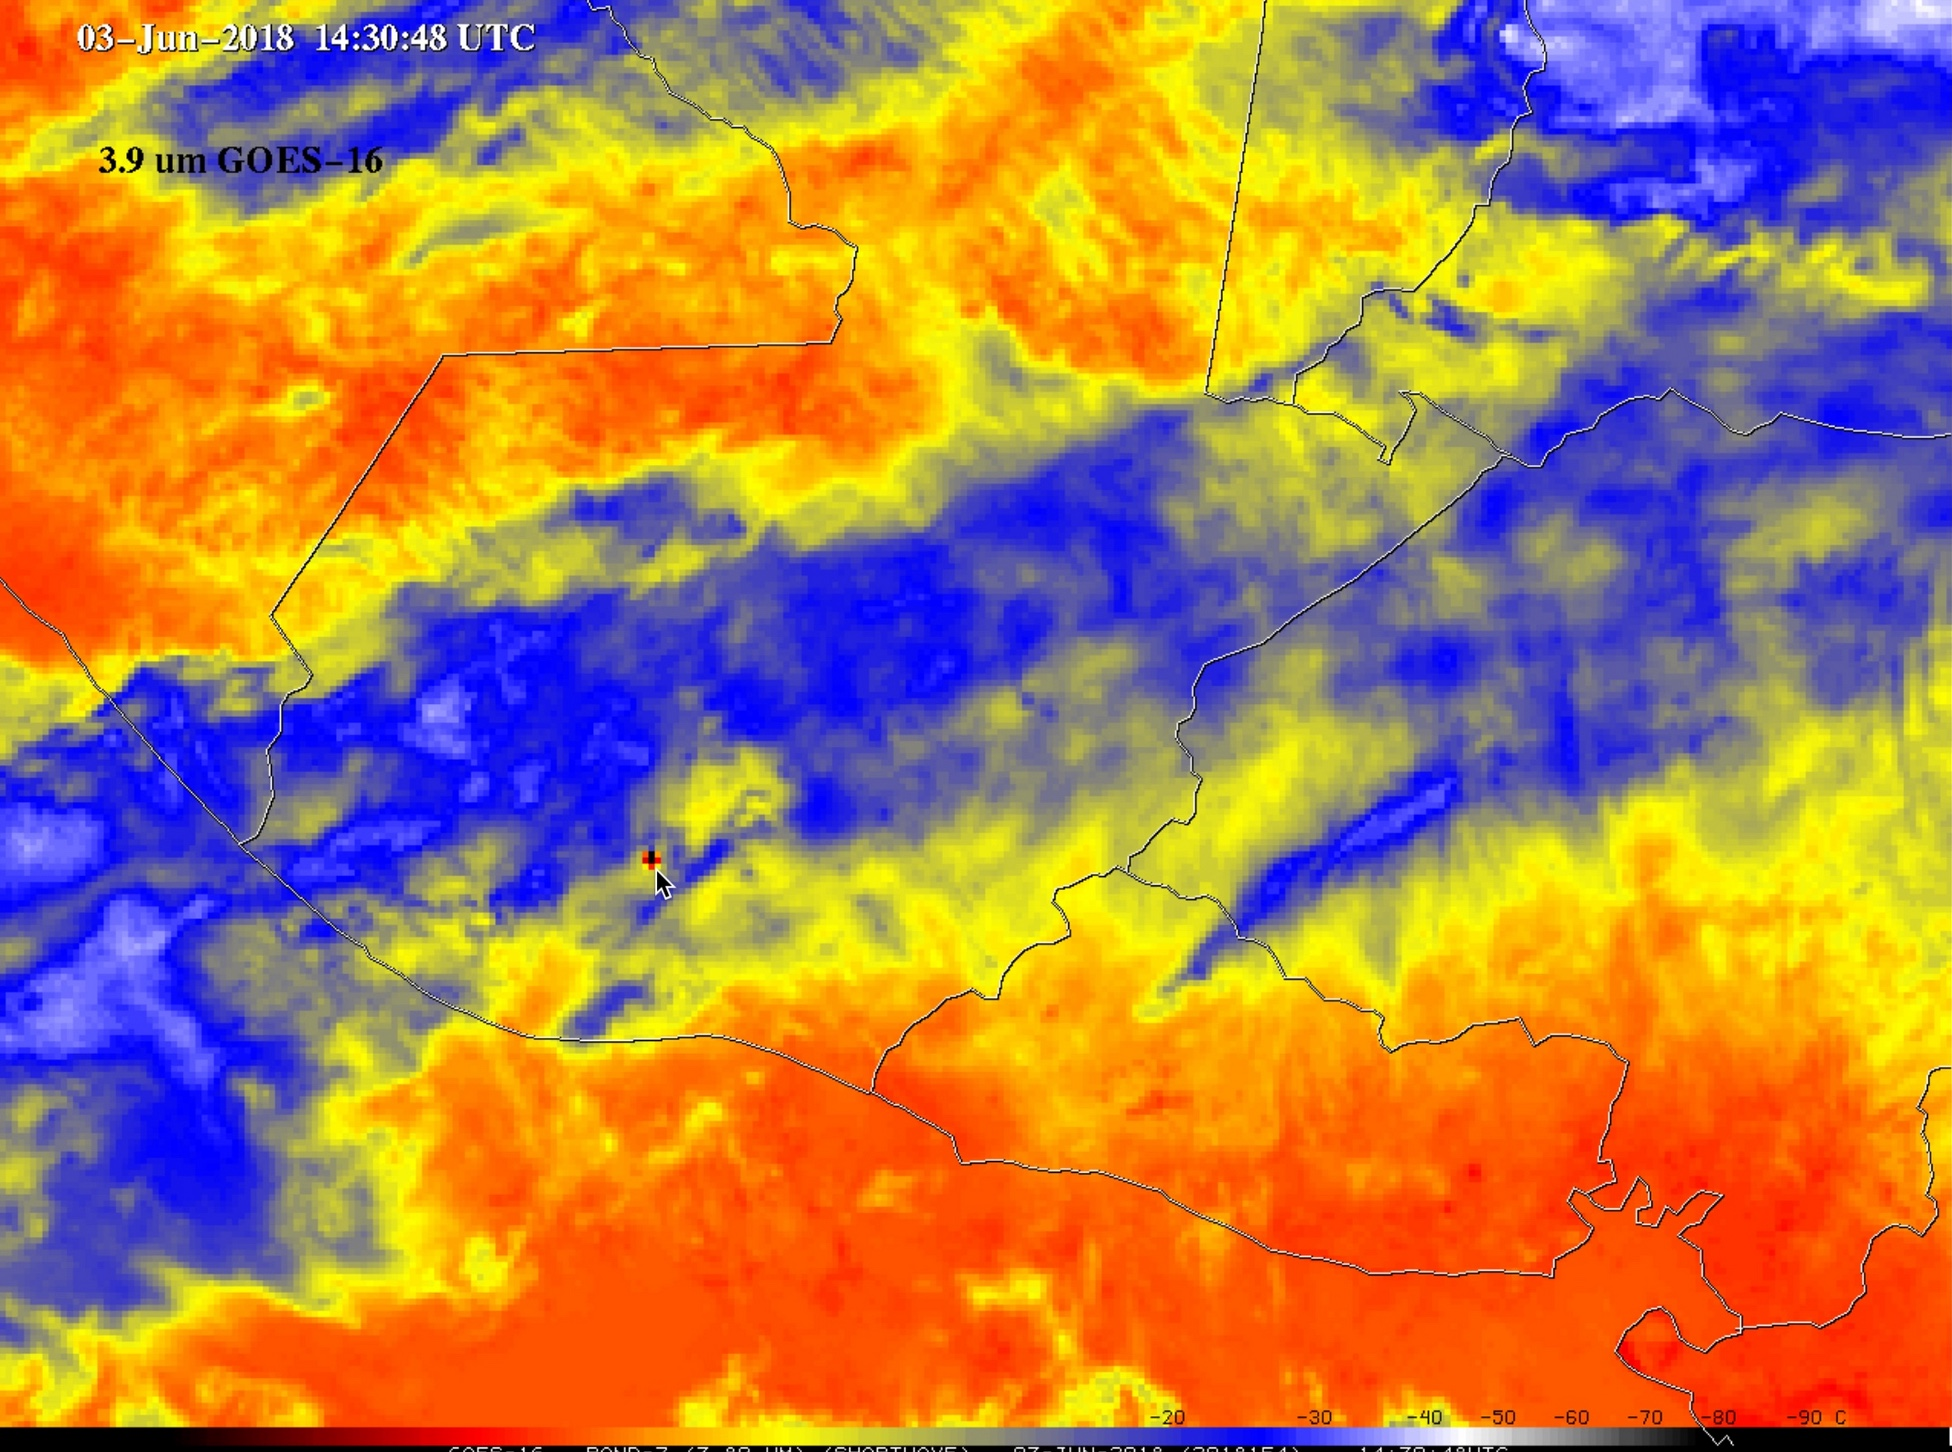 GOES-16 Shortwave Infrared (3.9 µm) images [click to play MP4 animation]